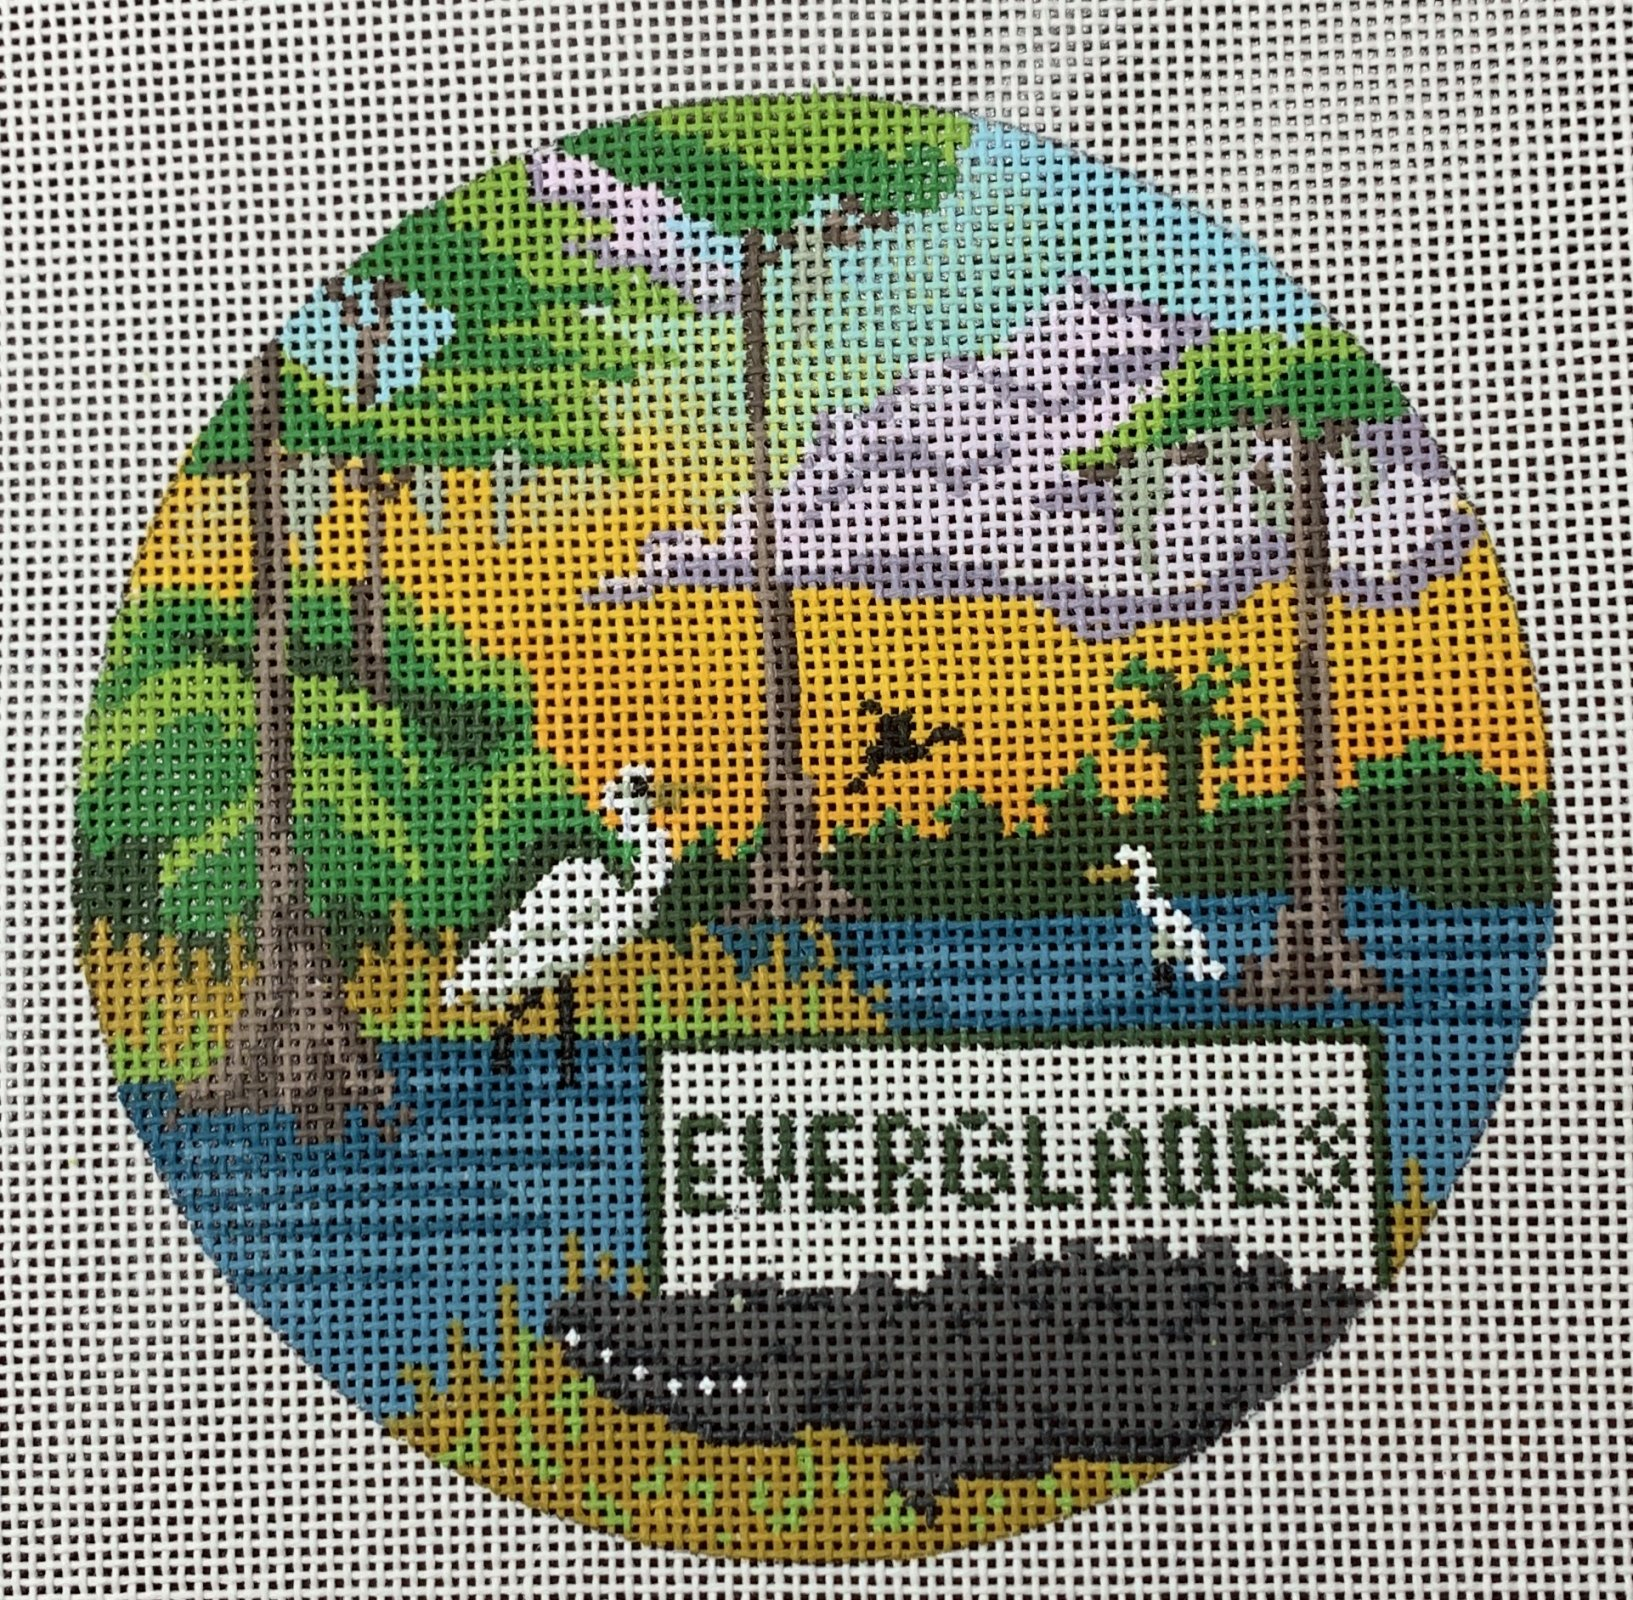 Everglades Ornament